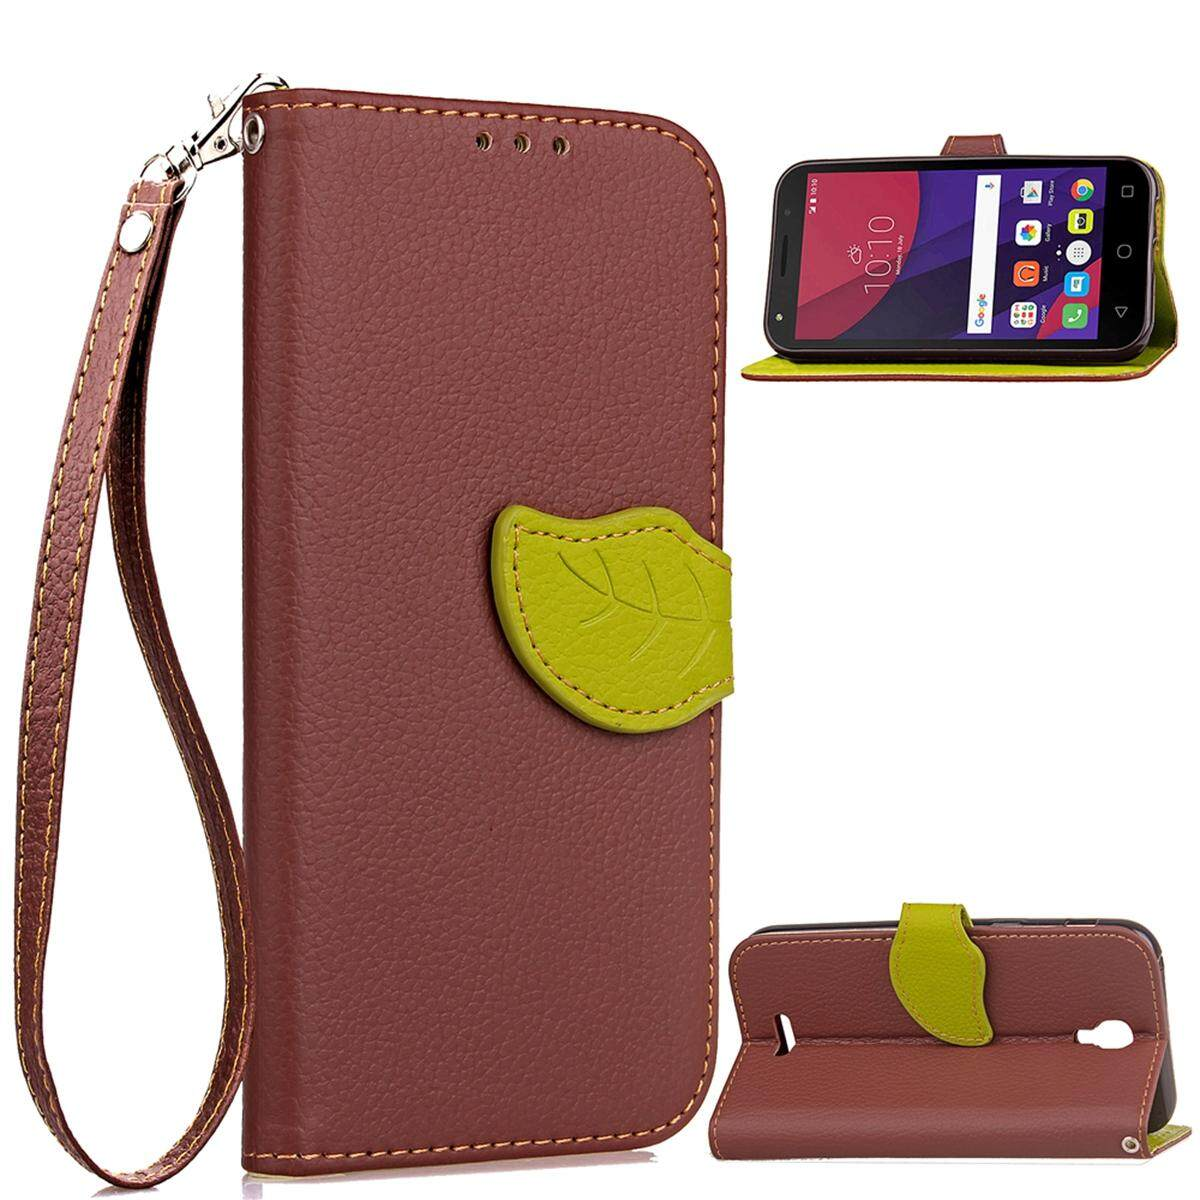 AS Beauty Phone Case for Alcatel OneTouch Pixi 4 5.0 OT5010D Leaf Design PU Leather Case Magnet Closed Flip Stand Cover with Wallet Card Slots and Hand Strap - intl